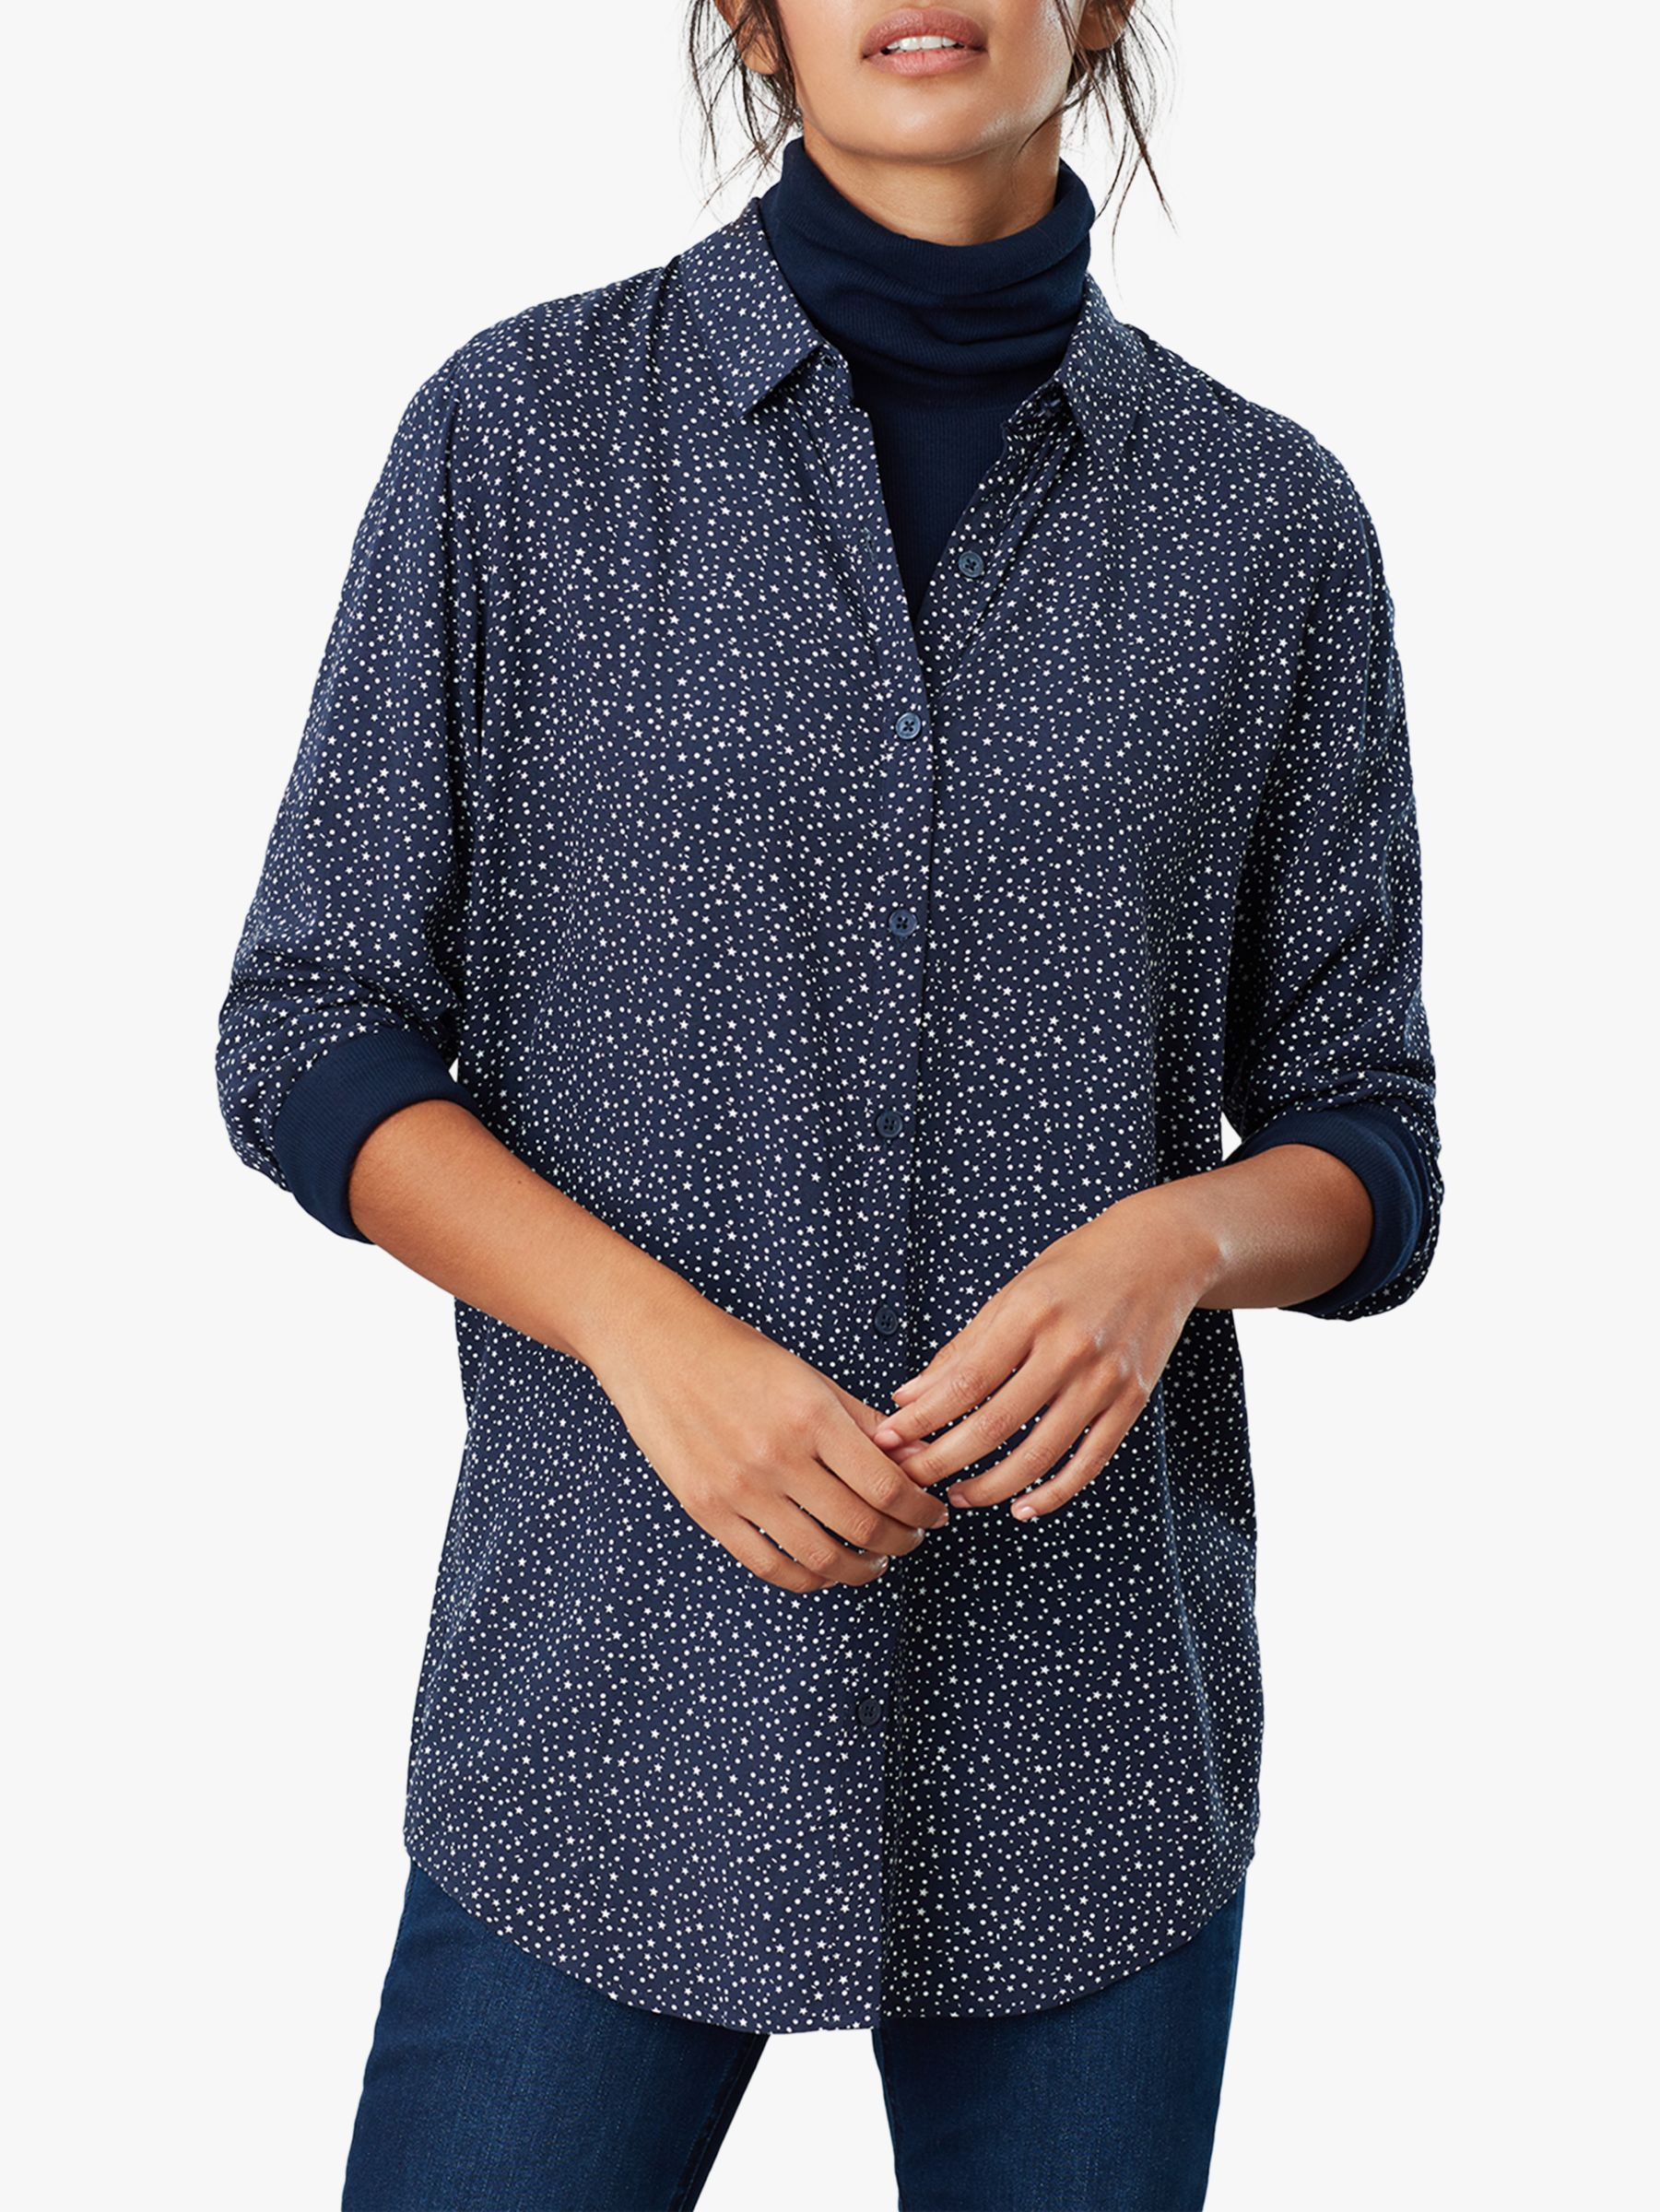 Joules Joules Elvina Spot Star Button Front Top, Navy